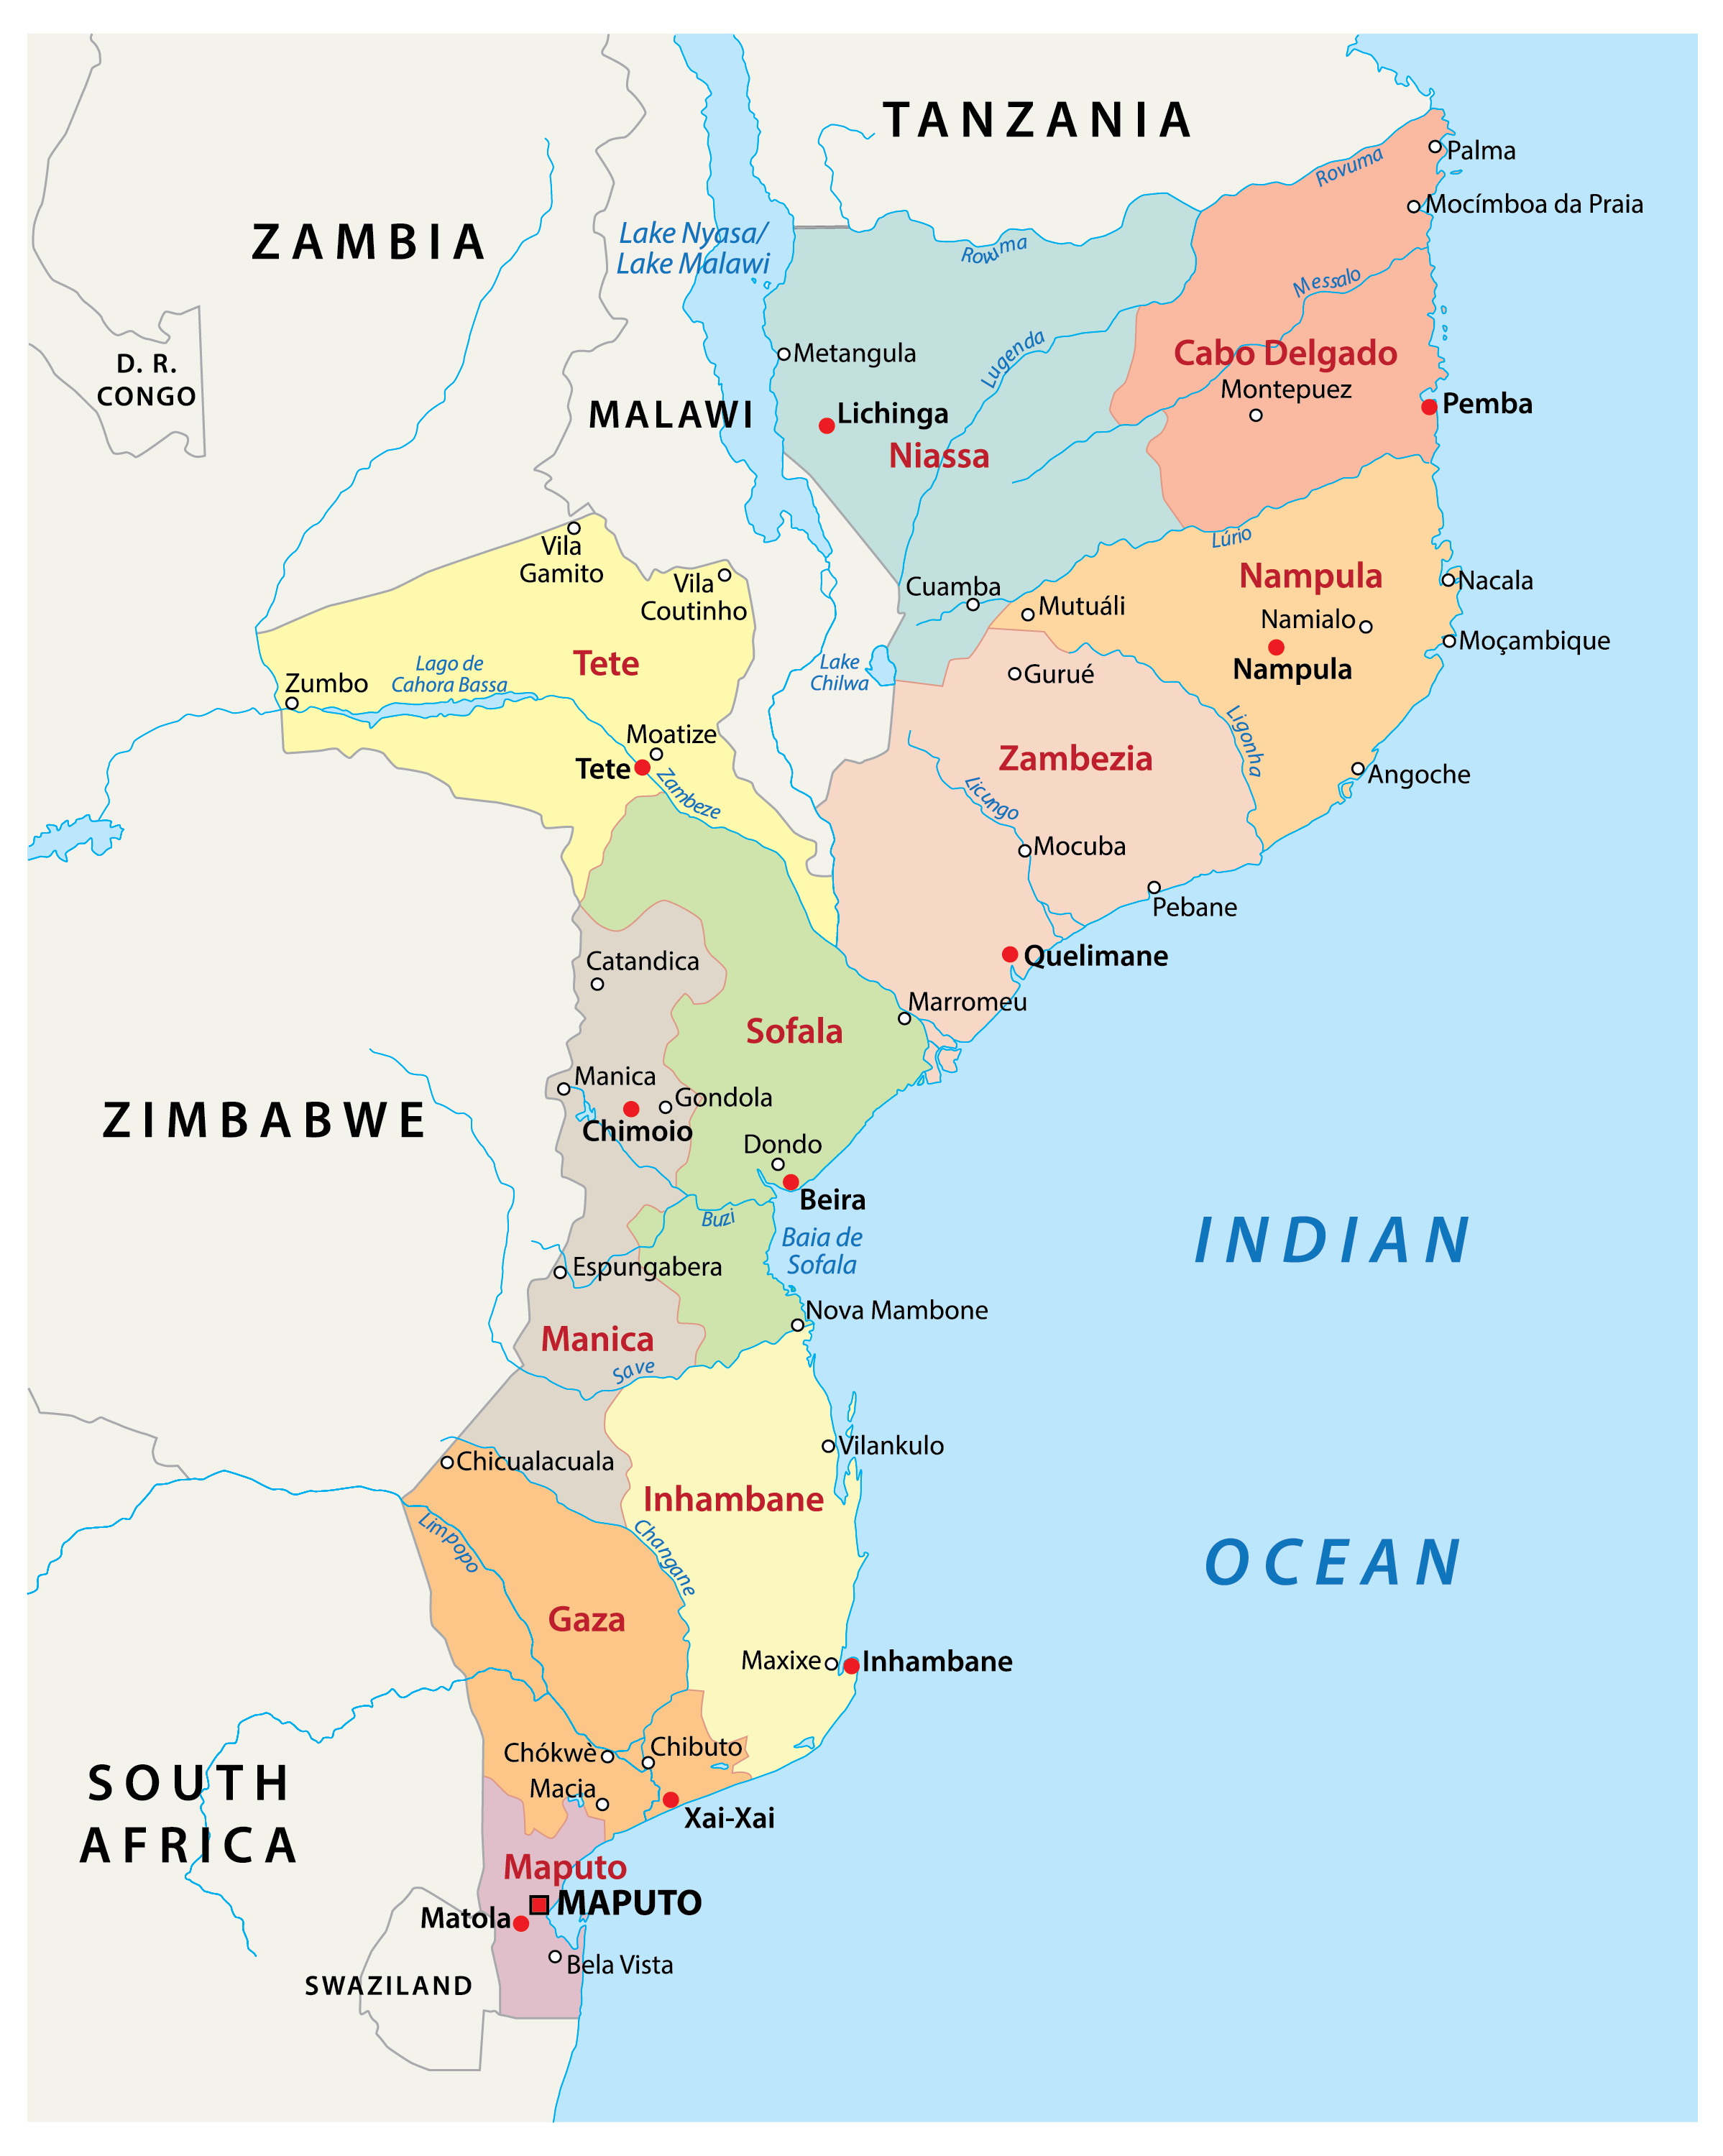 Political Map of Mozambique showing 10 provinces, their capital cities, and the national capital of Maputo.